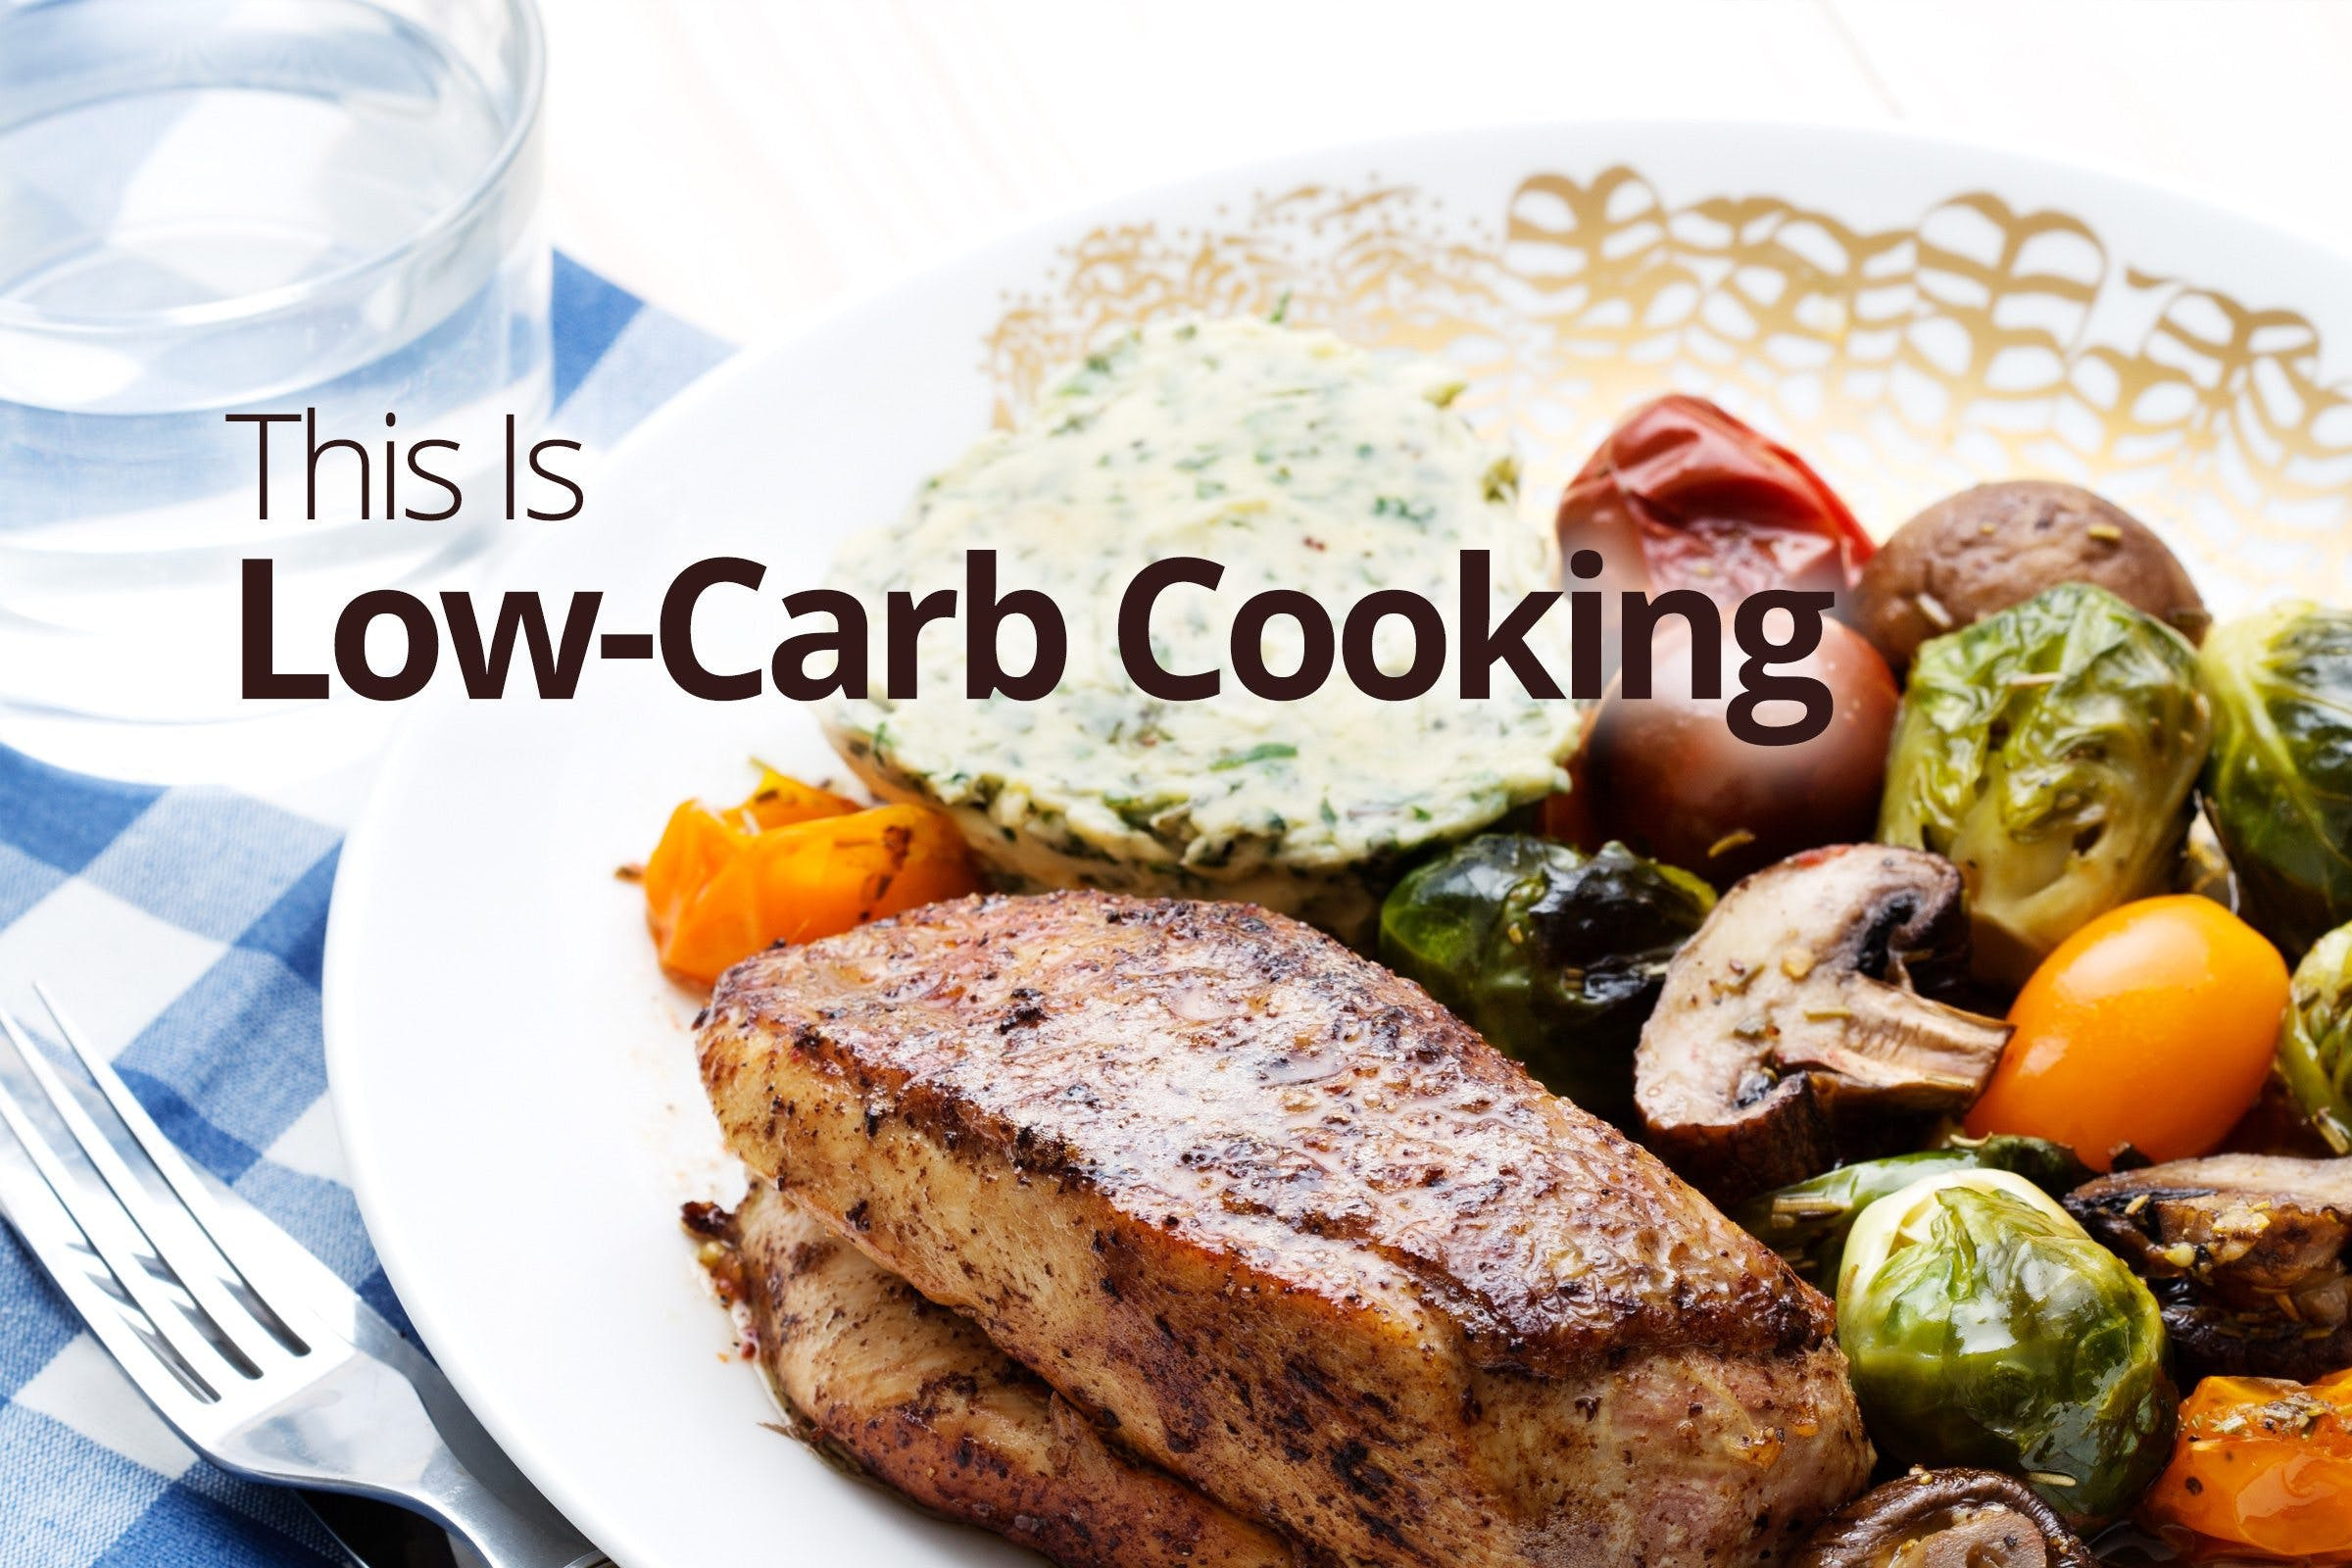 Diet Doctor Low Carb Recipes  This is Low Carb Cooking Recipes & Meal Plans Diet Doctor